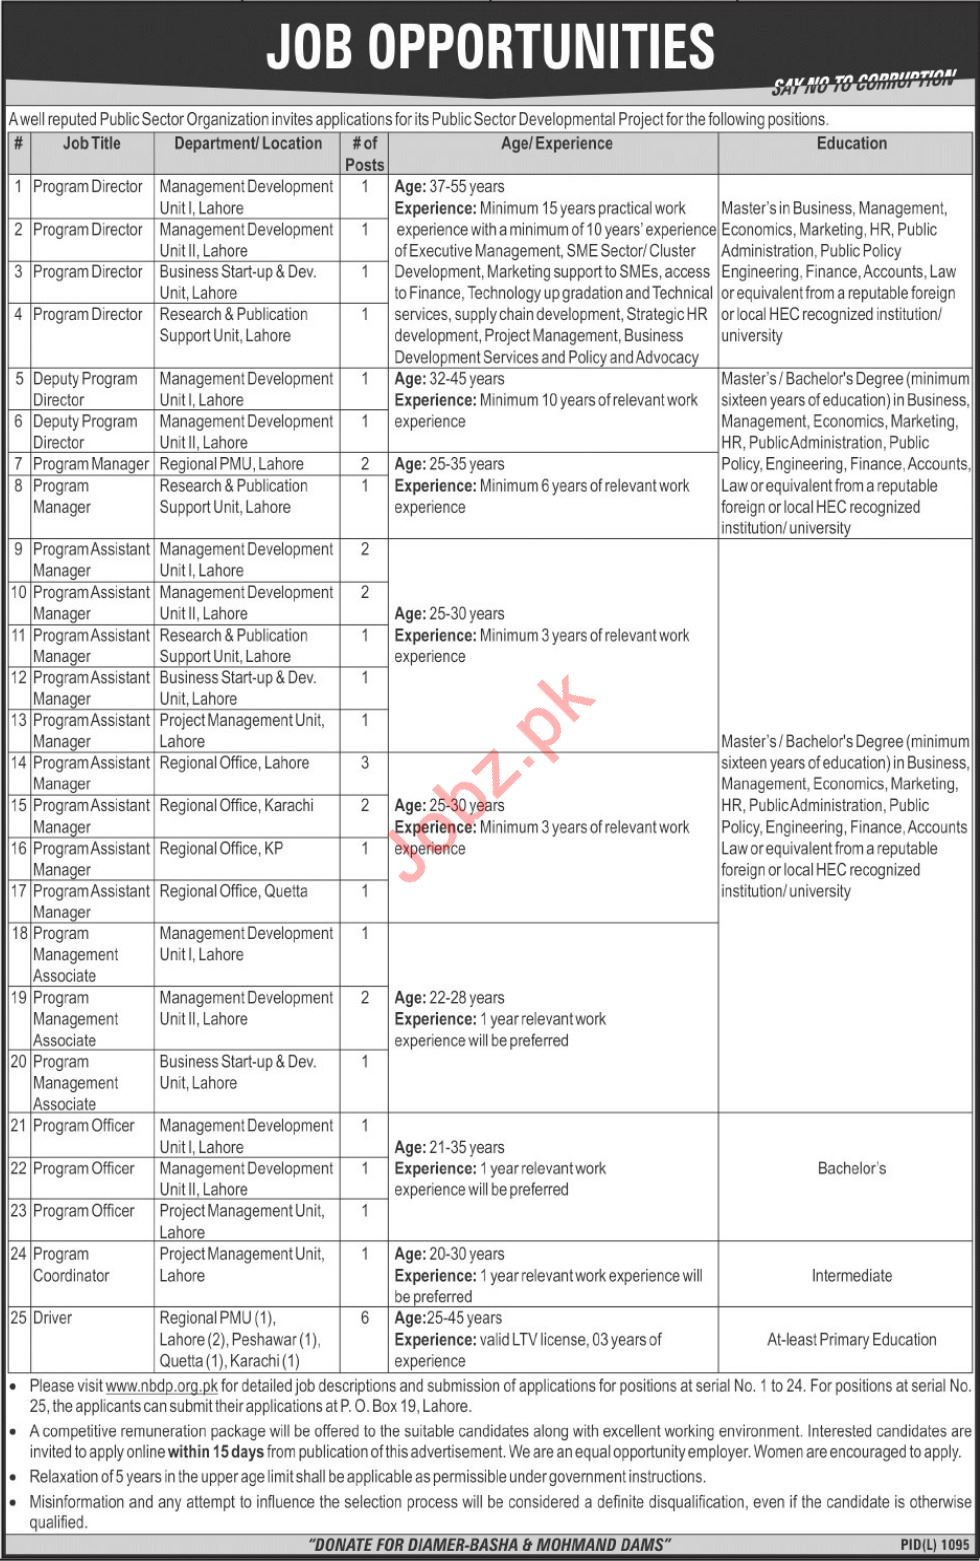 Project Director for Public Sector Developmental Project